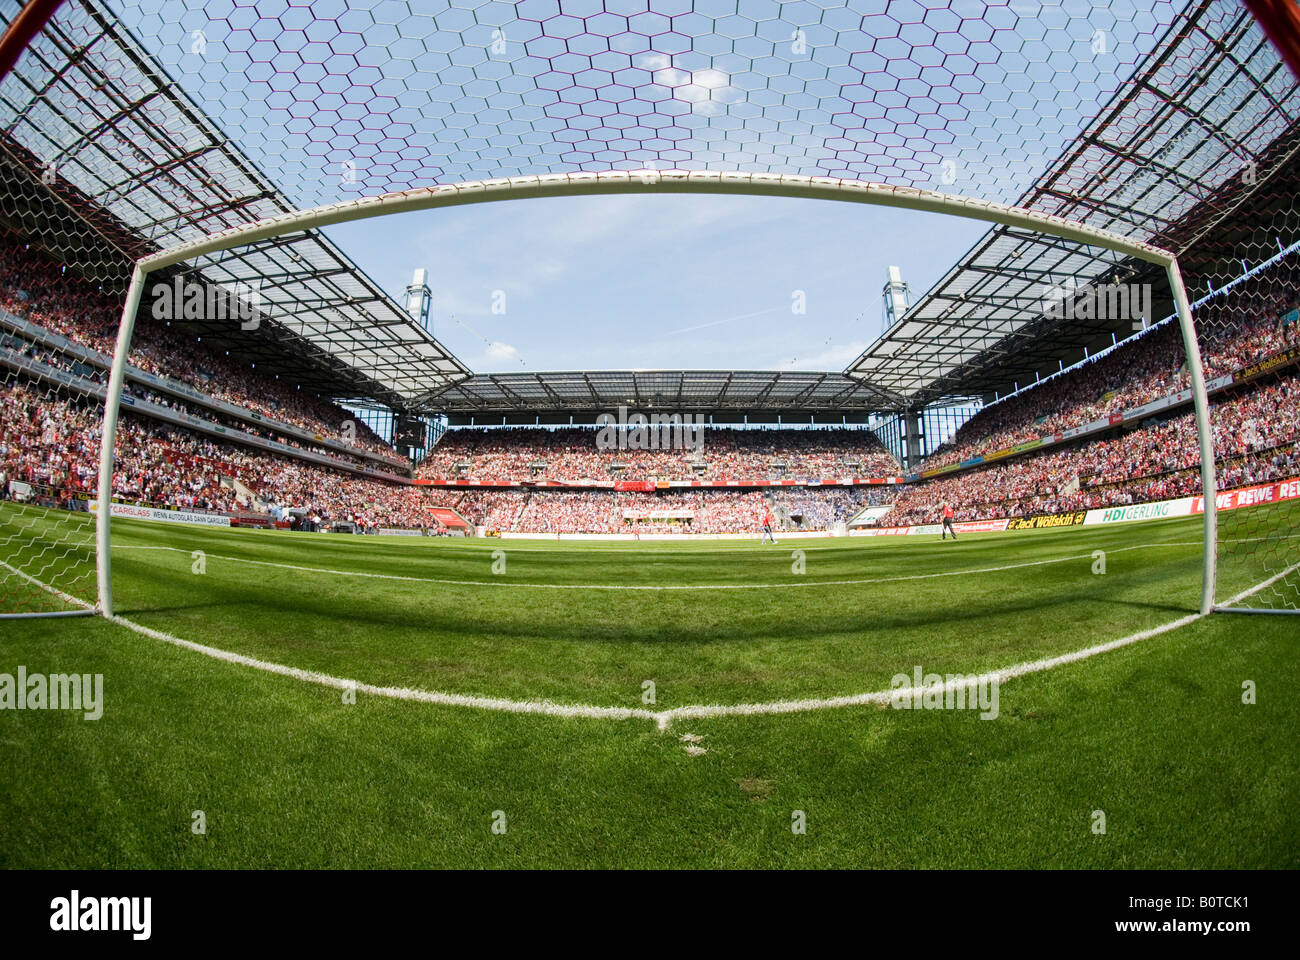 empty goal in filled football Stadium before kick-off - Stock Image